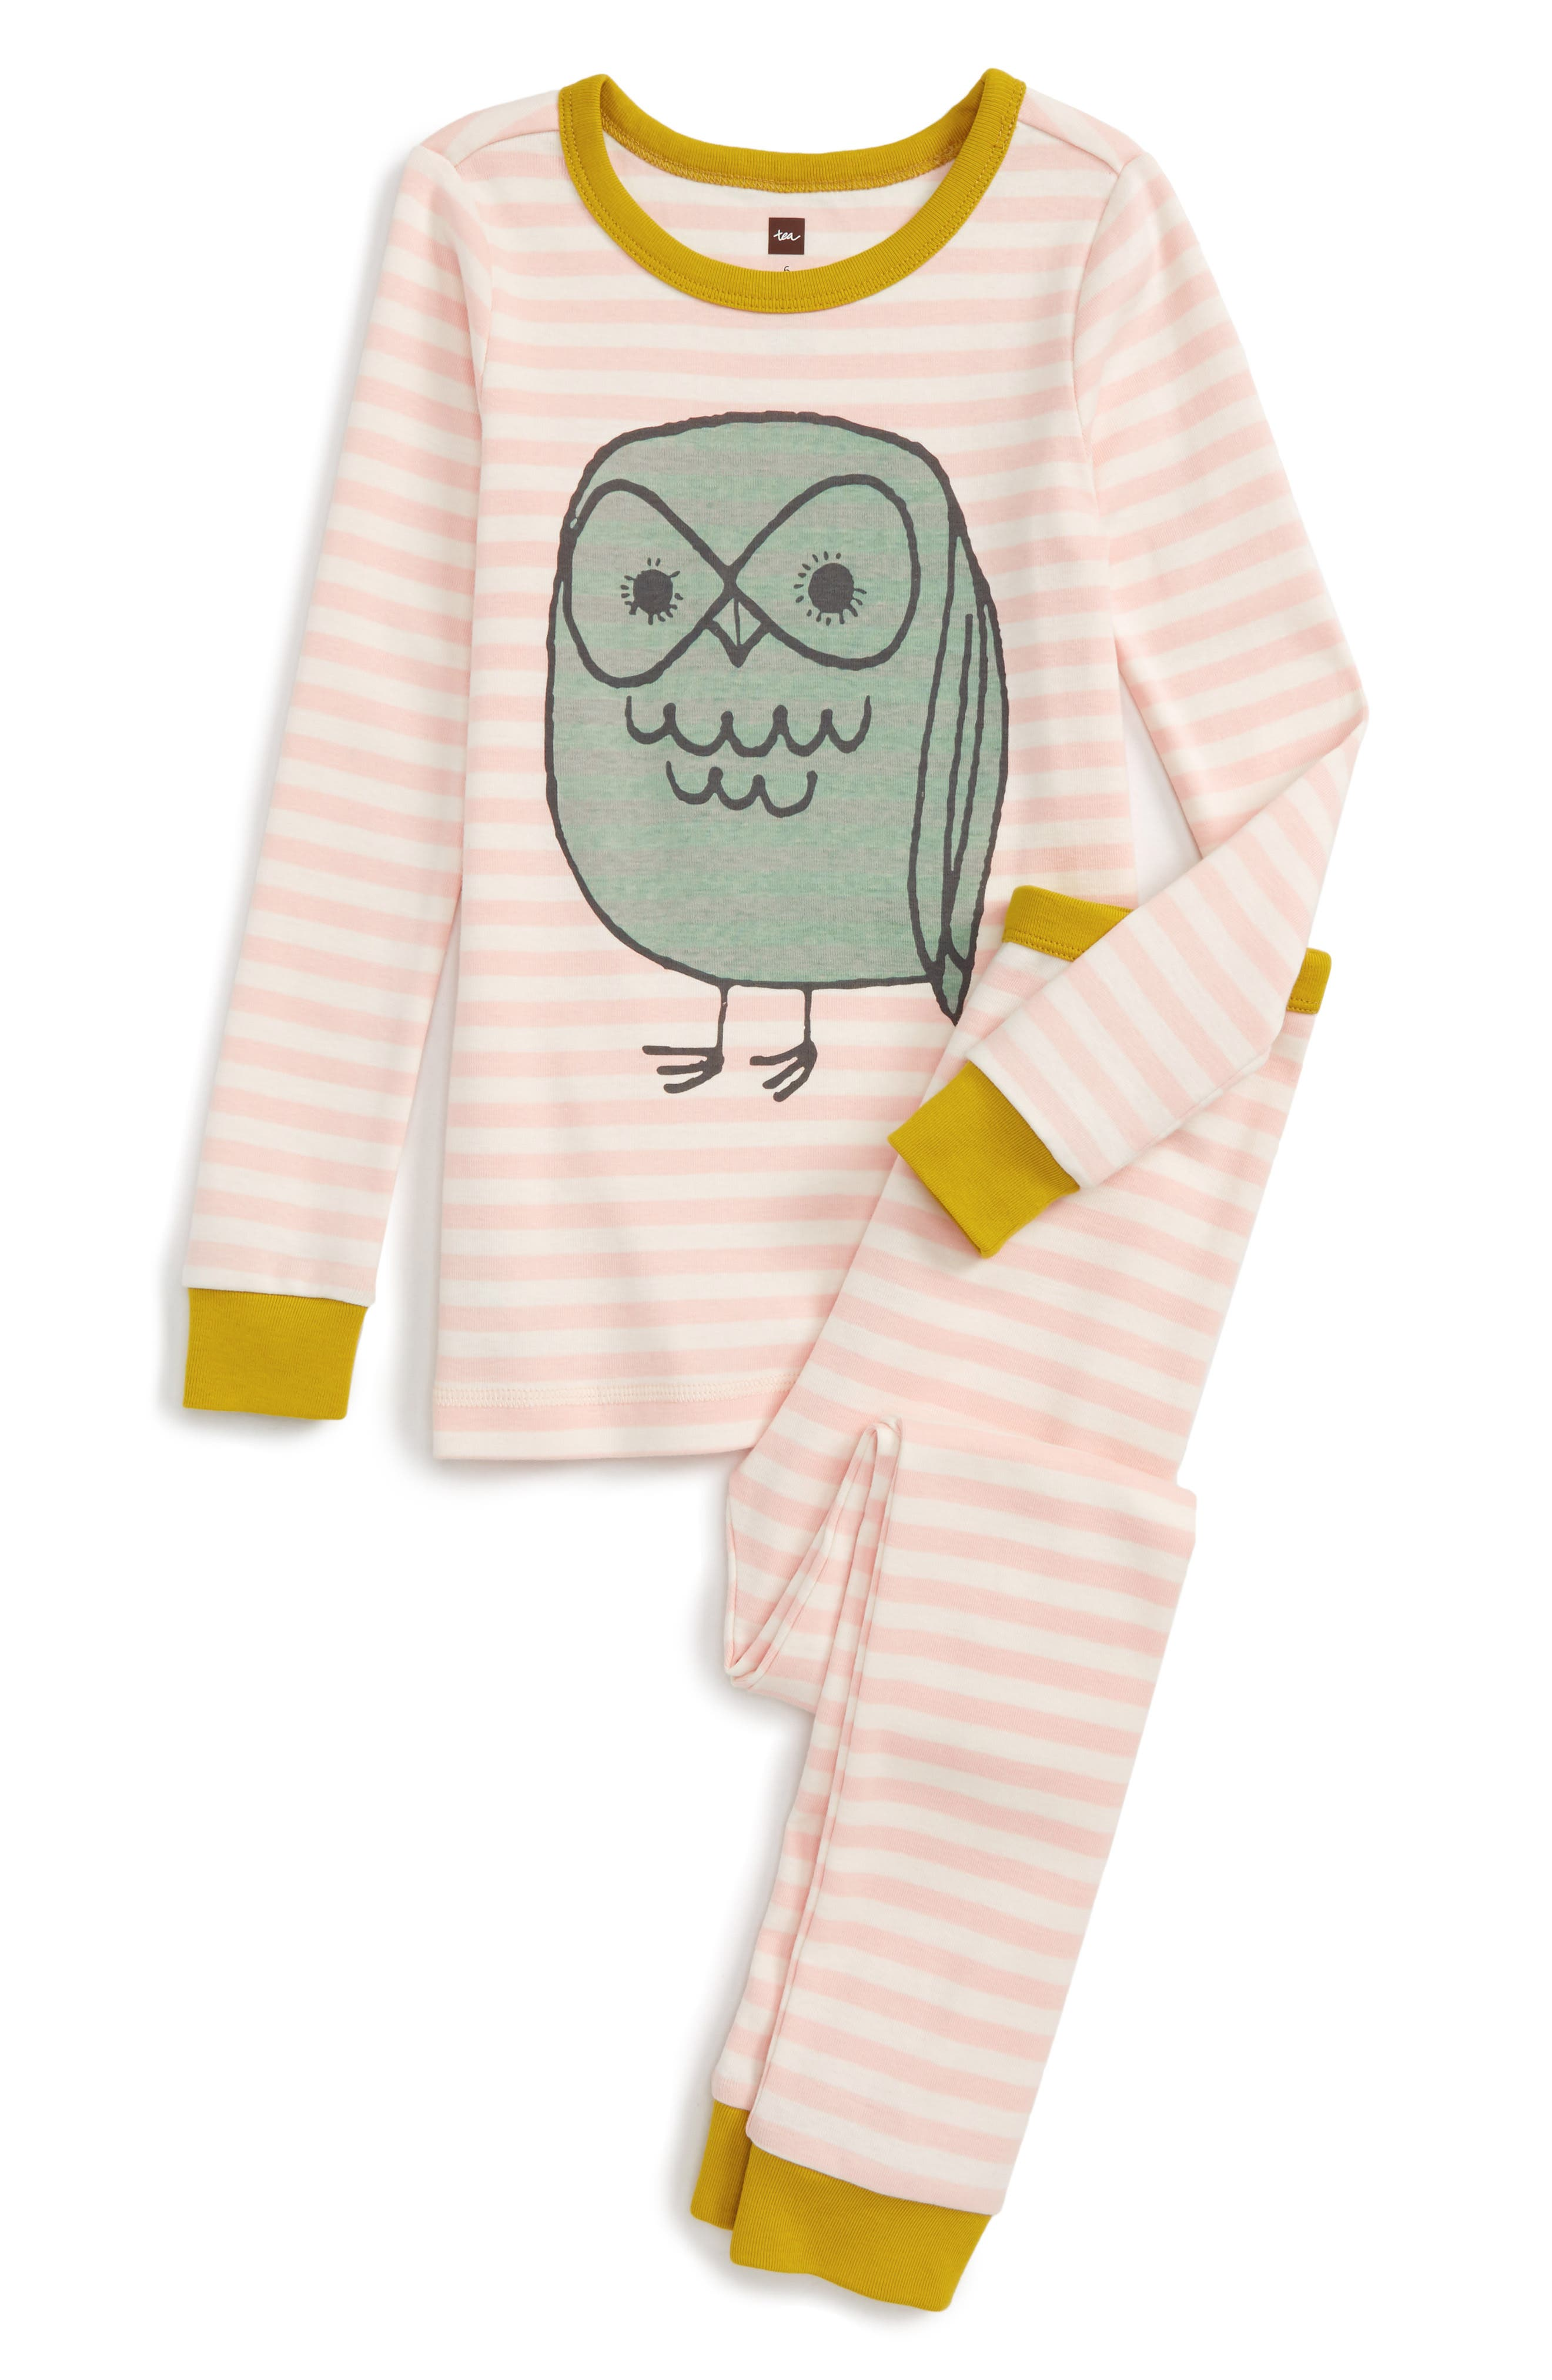 Alternate Image 1 Selected - Tea Collection Tawny Owl Fitted Two-Piece Pajamas (Toddler Girls, Little Girls & Big Girls)